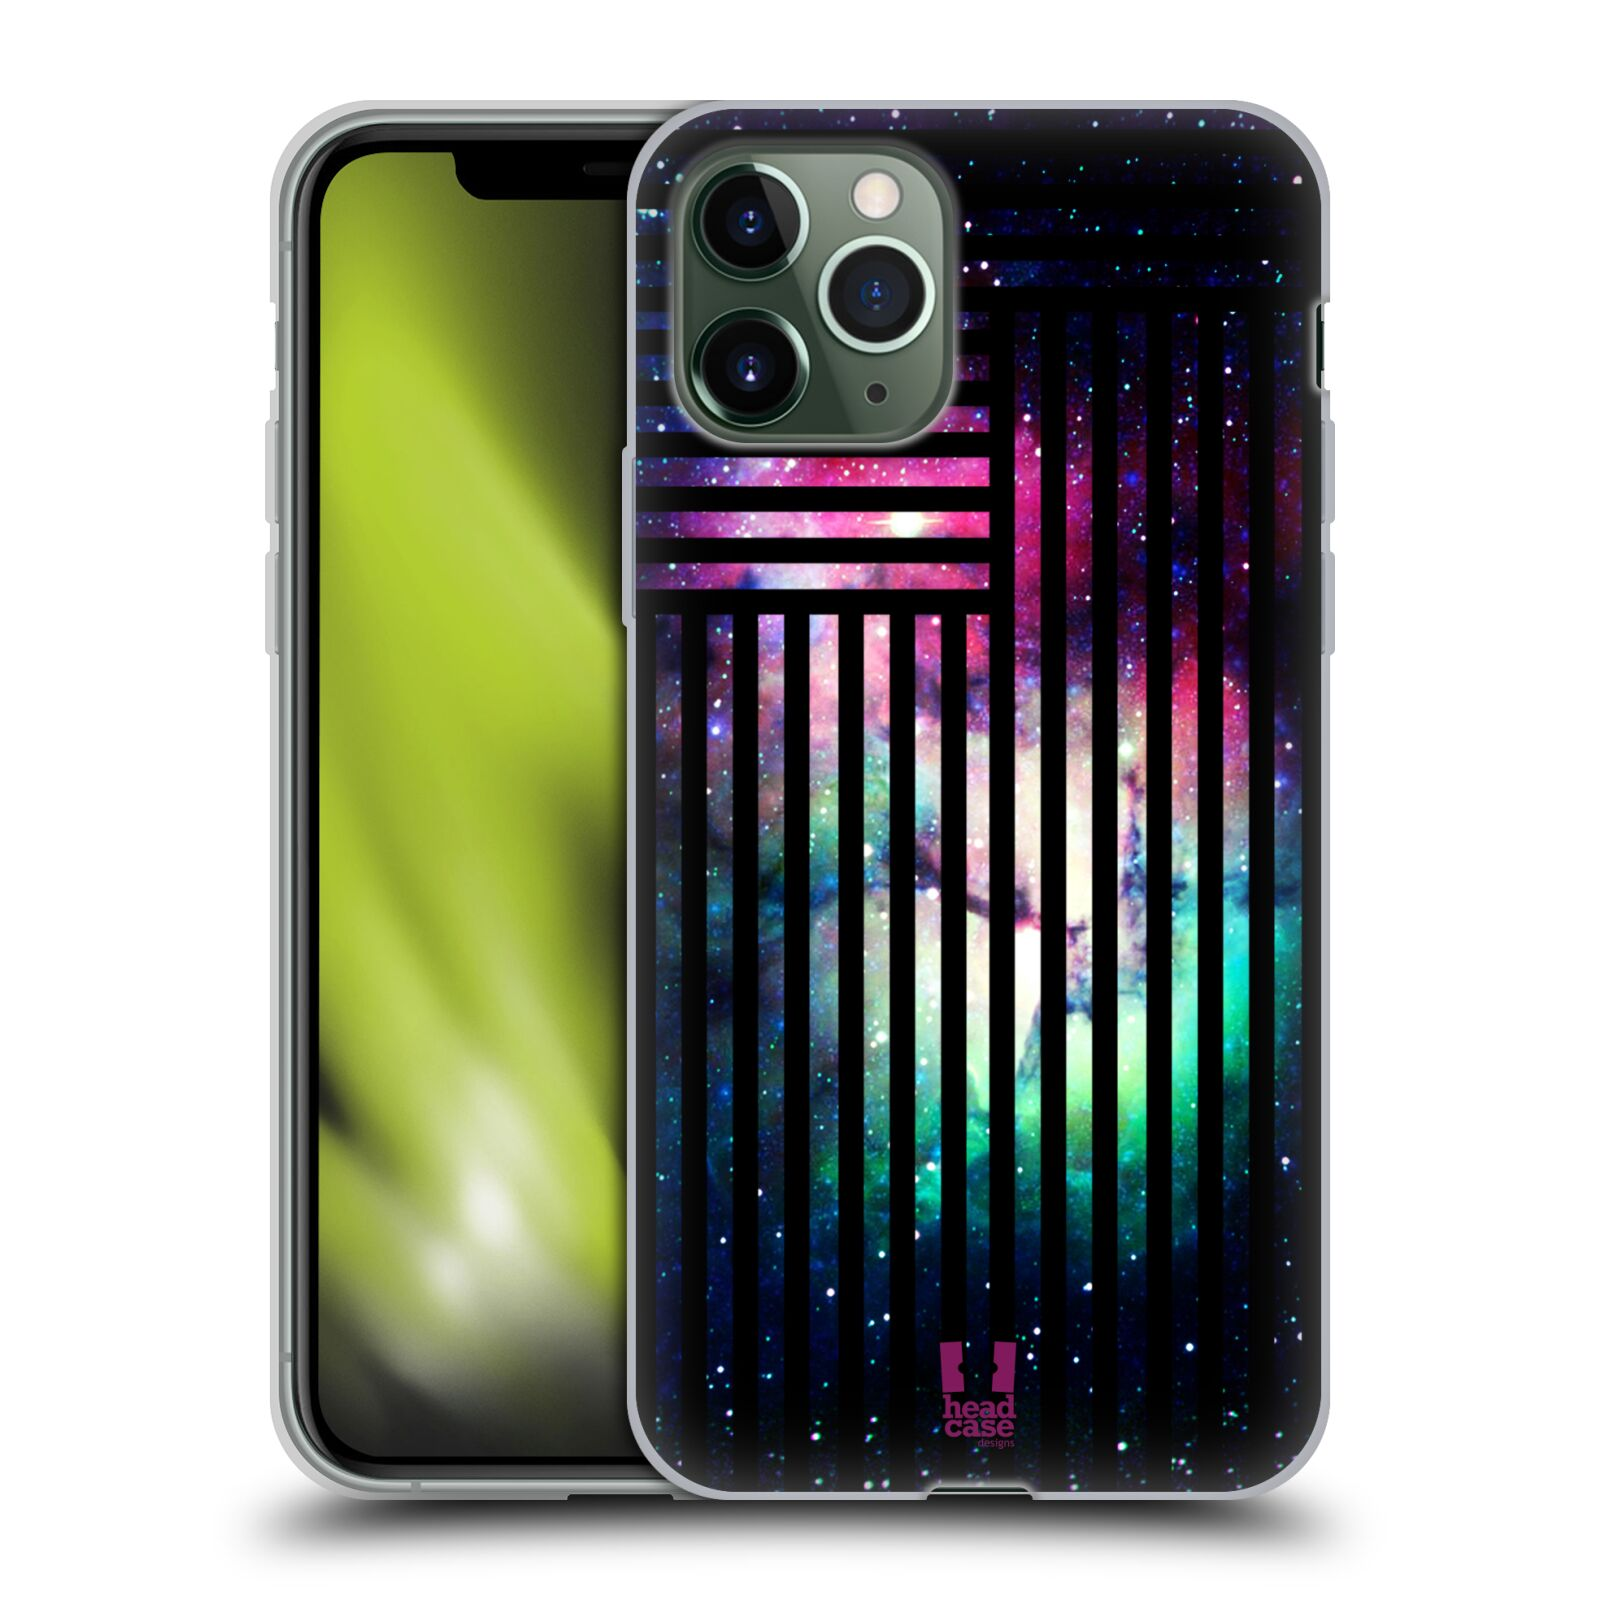 louisvuitton krytu na iphone xs , Silikonové pouzdro na mobil Apple iPhone 11 Pro - Head Case - MIX NEBULA STRIPES